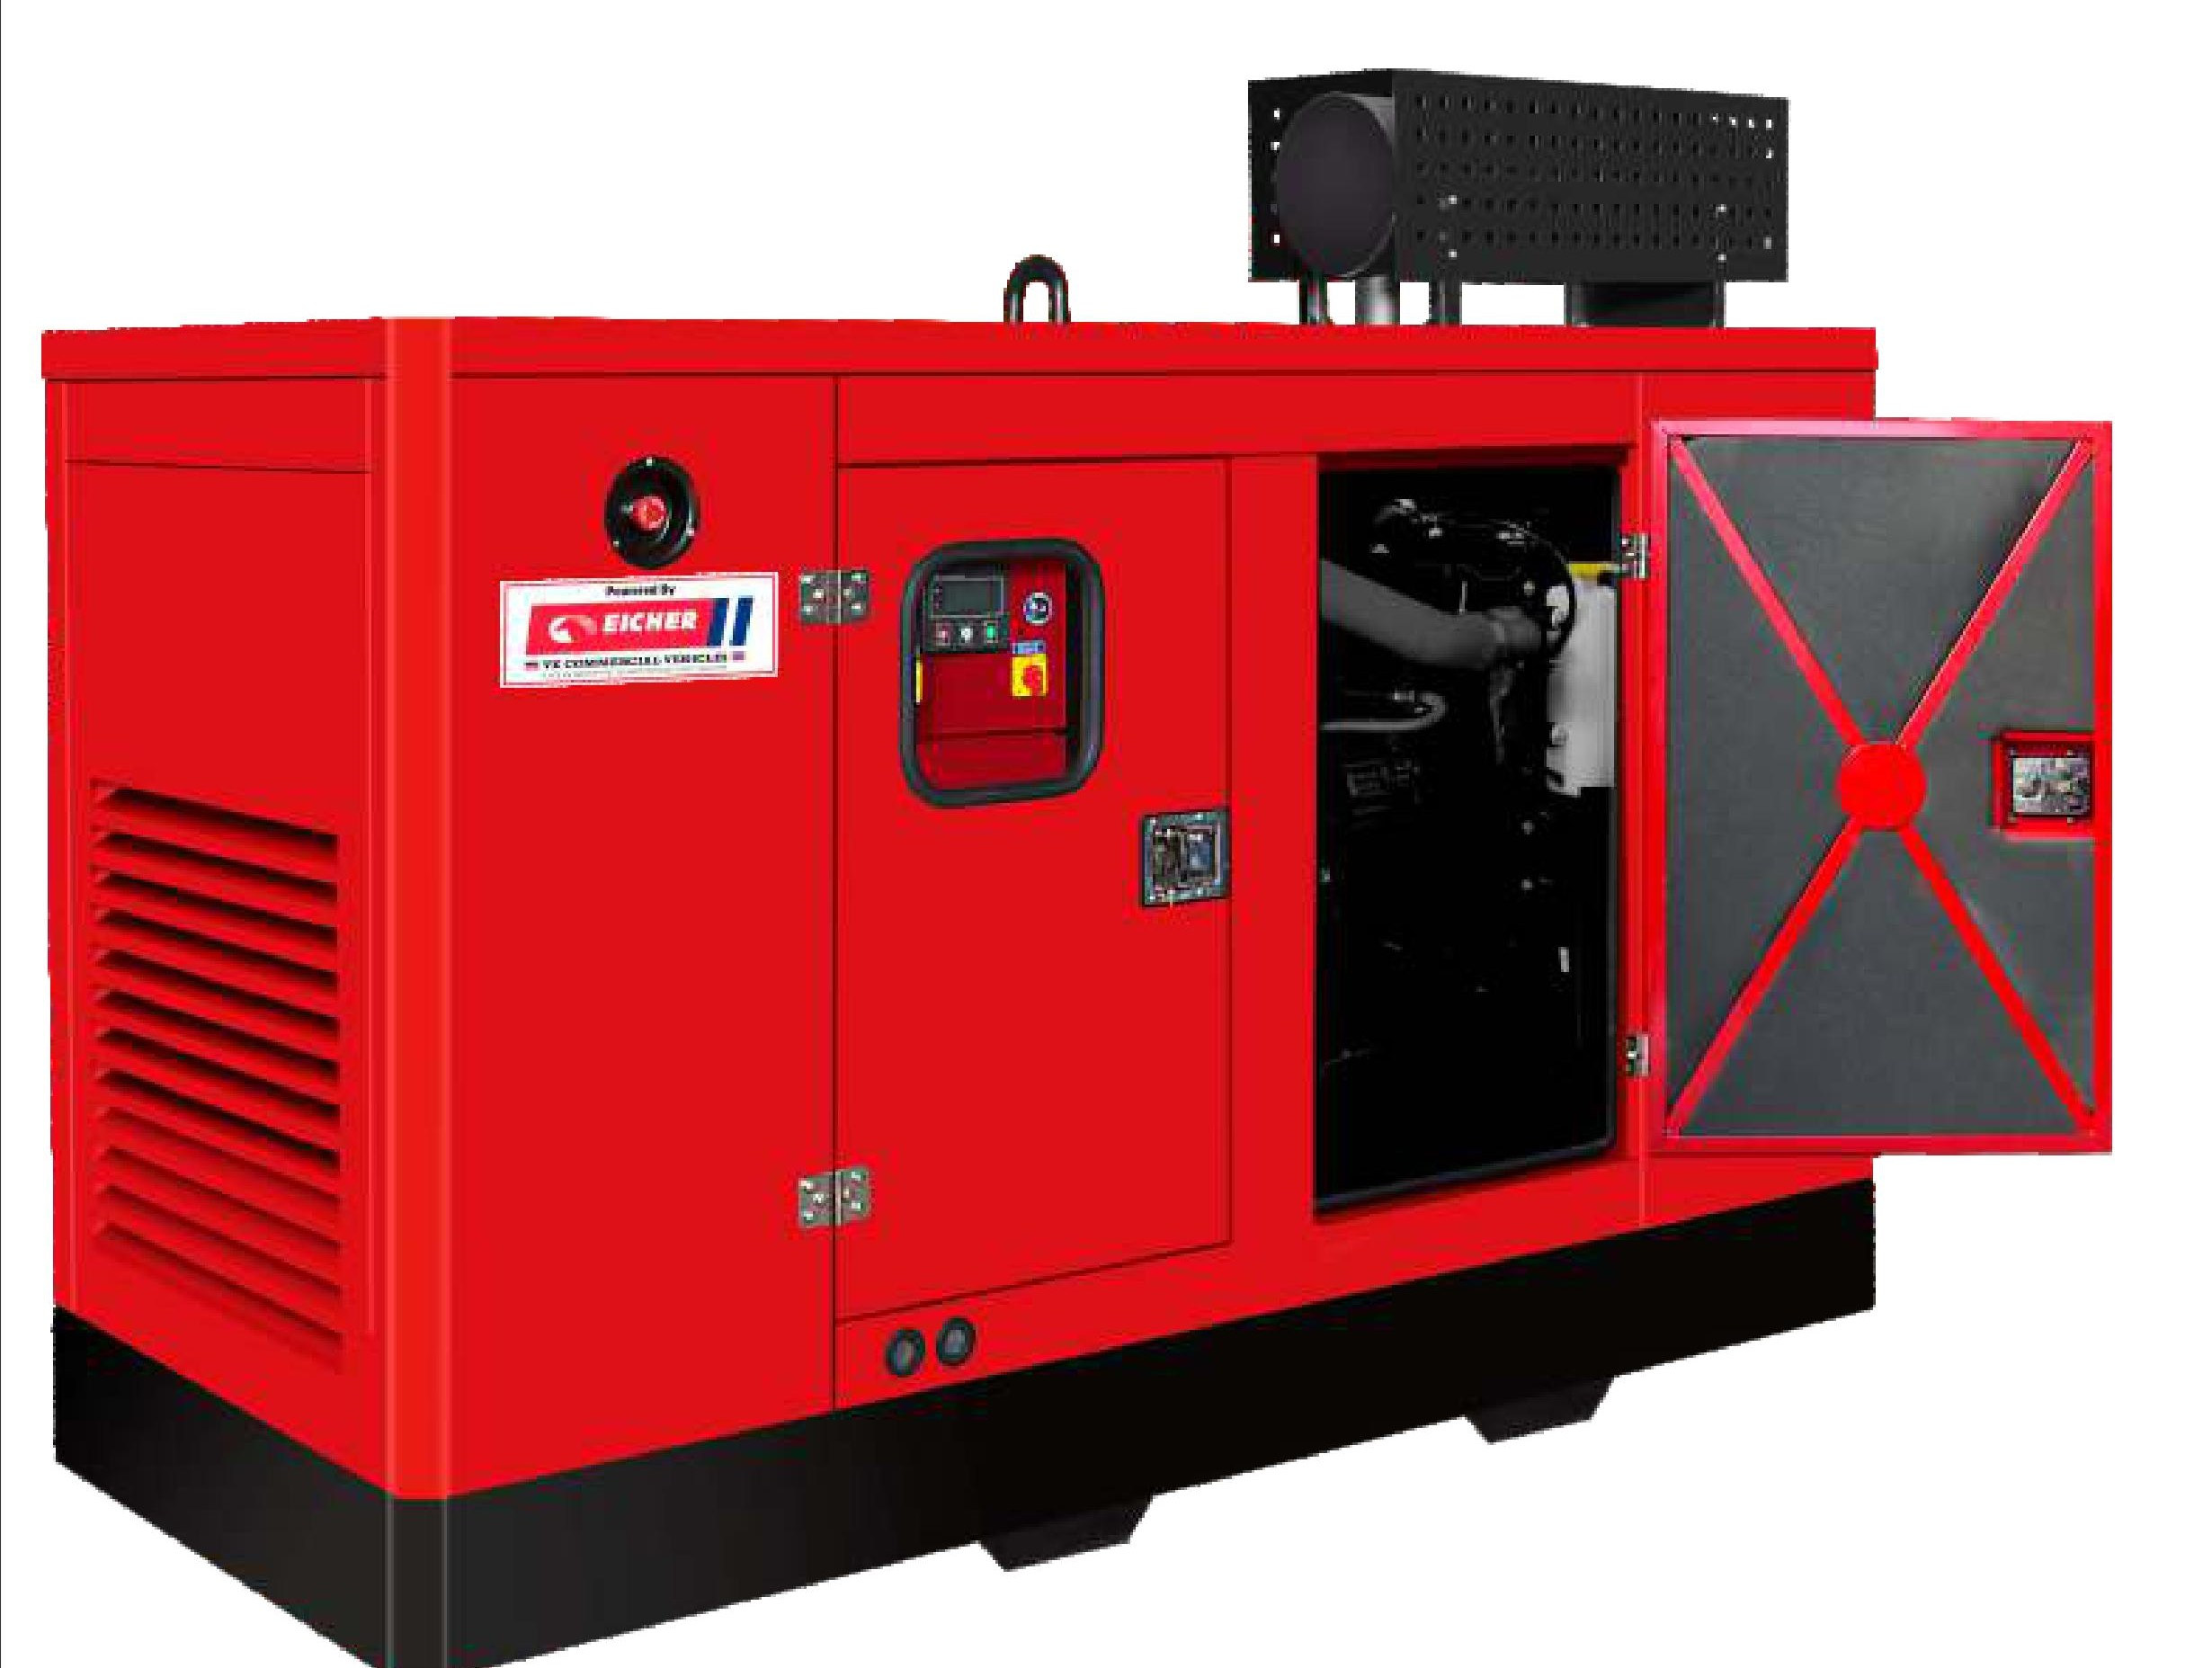 Manufactures Heavy Engines and DG Sets with Advance Technology and Highest Performance of Mahindra Genset Supplier Diesel Engine, Generator, Generators, Generator India,Chinese Gensets, Chinese Diesel Generators, Chinese Portable Gensets in Delhi India